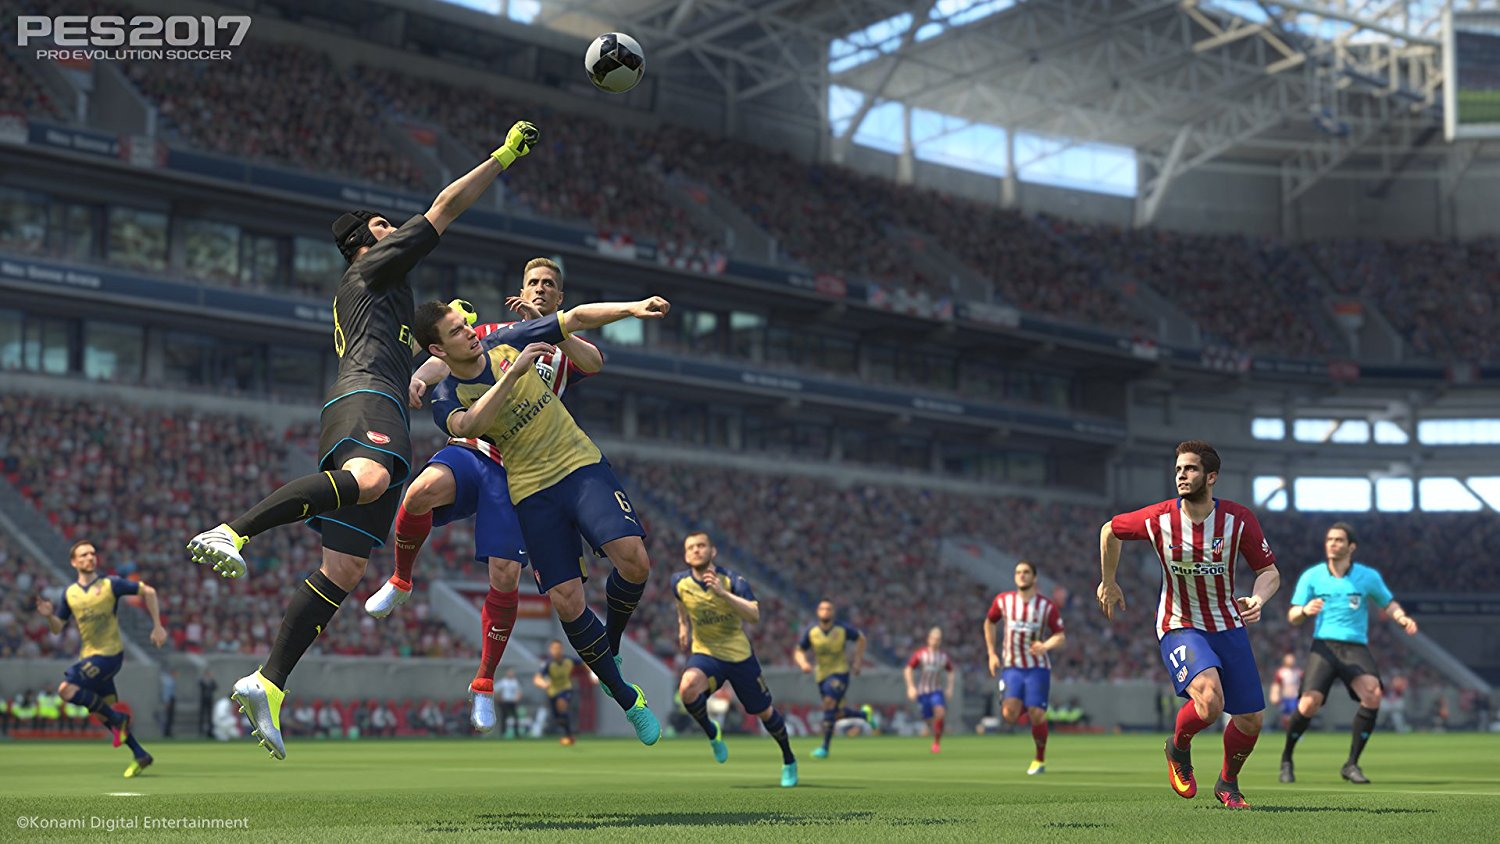 pes 2017 pro evolution gameplay screenshot